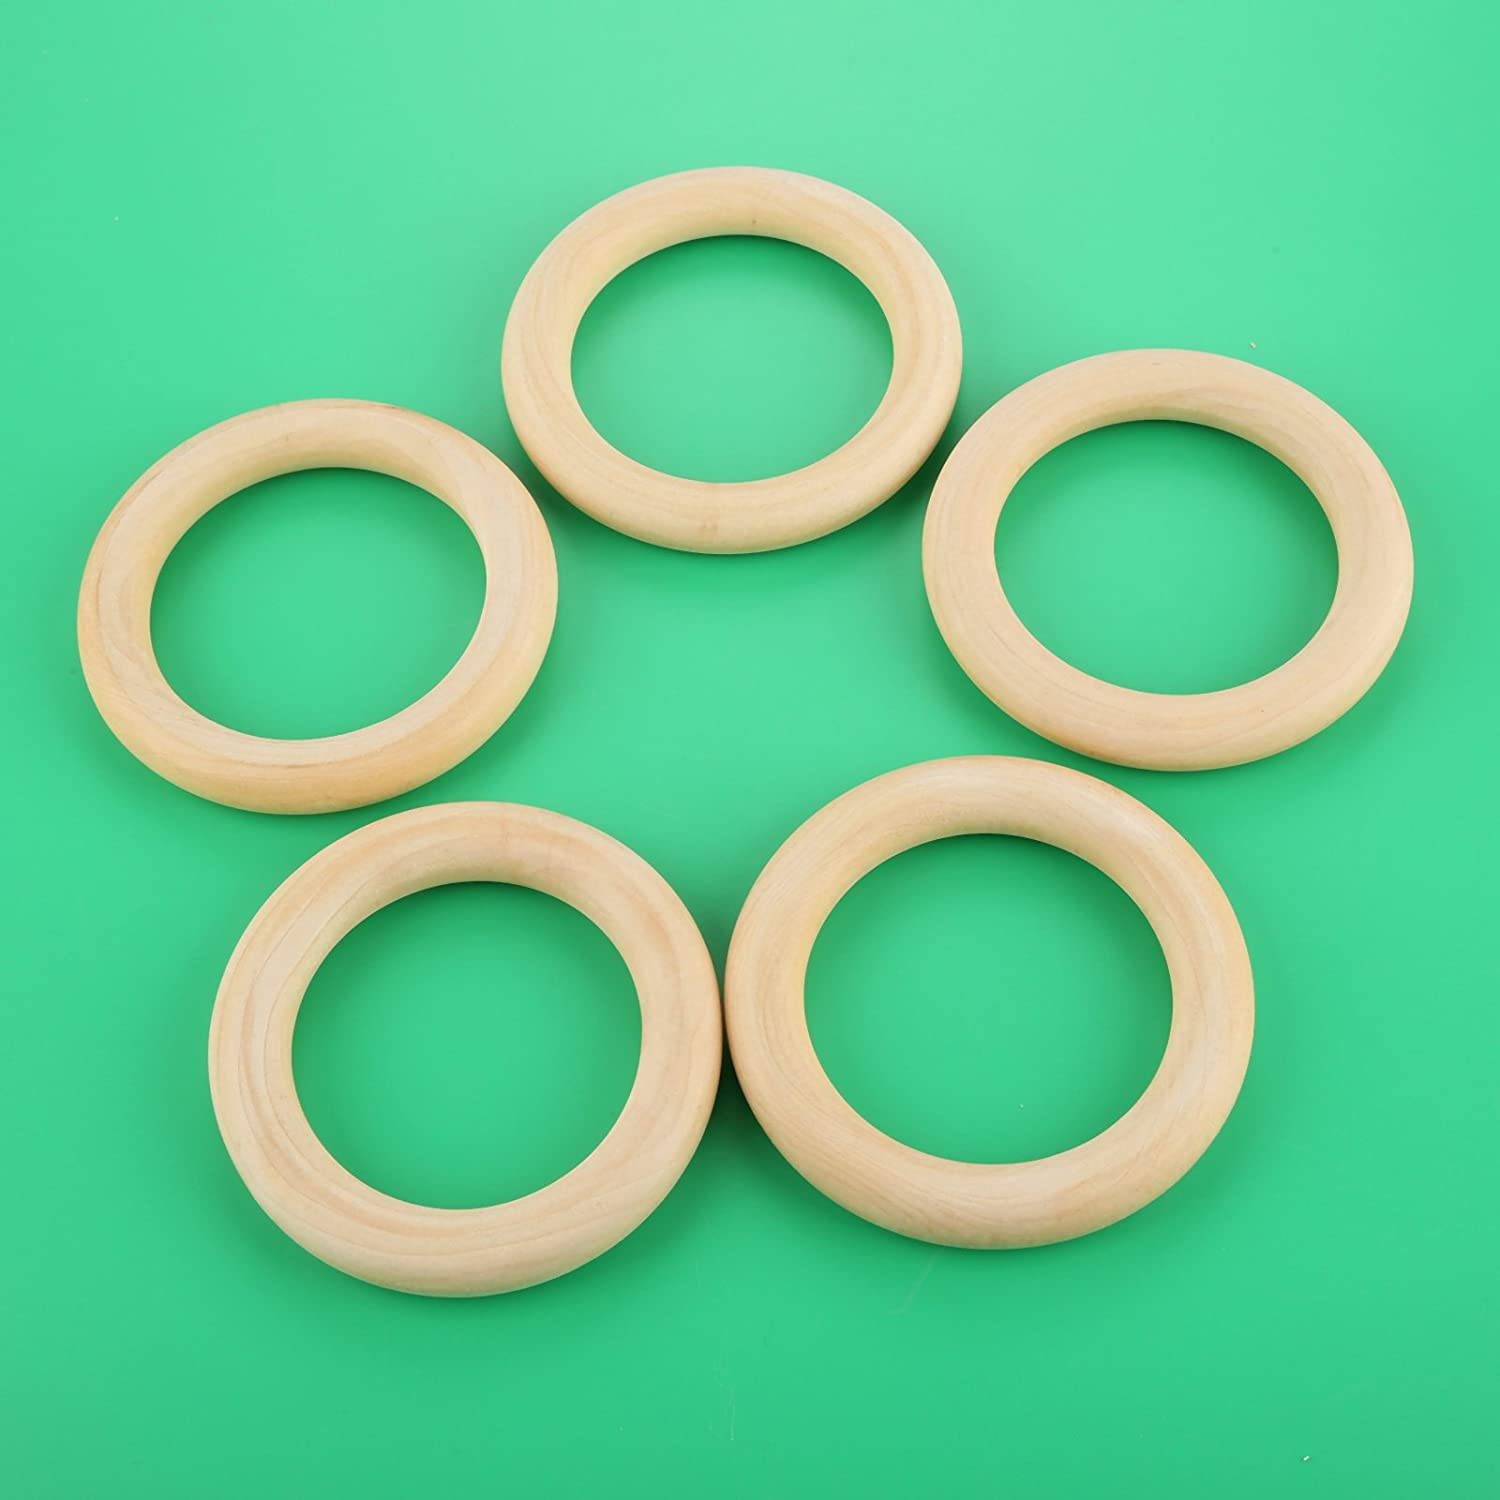 Unfinished Wooden Rings for Craft Handmade Jewelry and Decorations 45MM 20 Pcs Round Wooden Hoops Wood Pendant Connectors Wooden Rings Circle